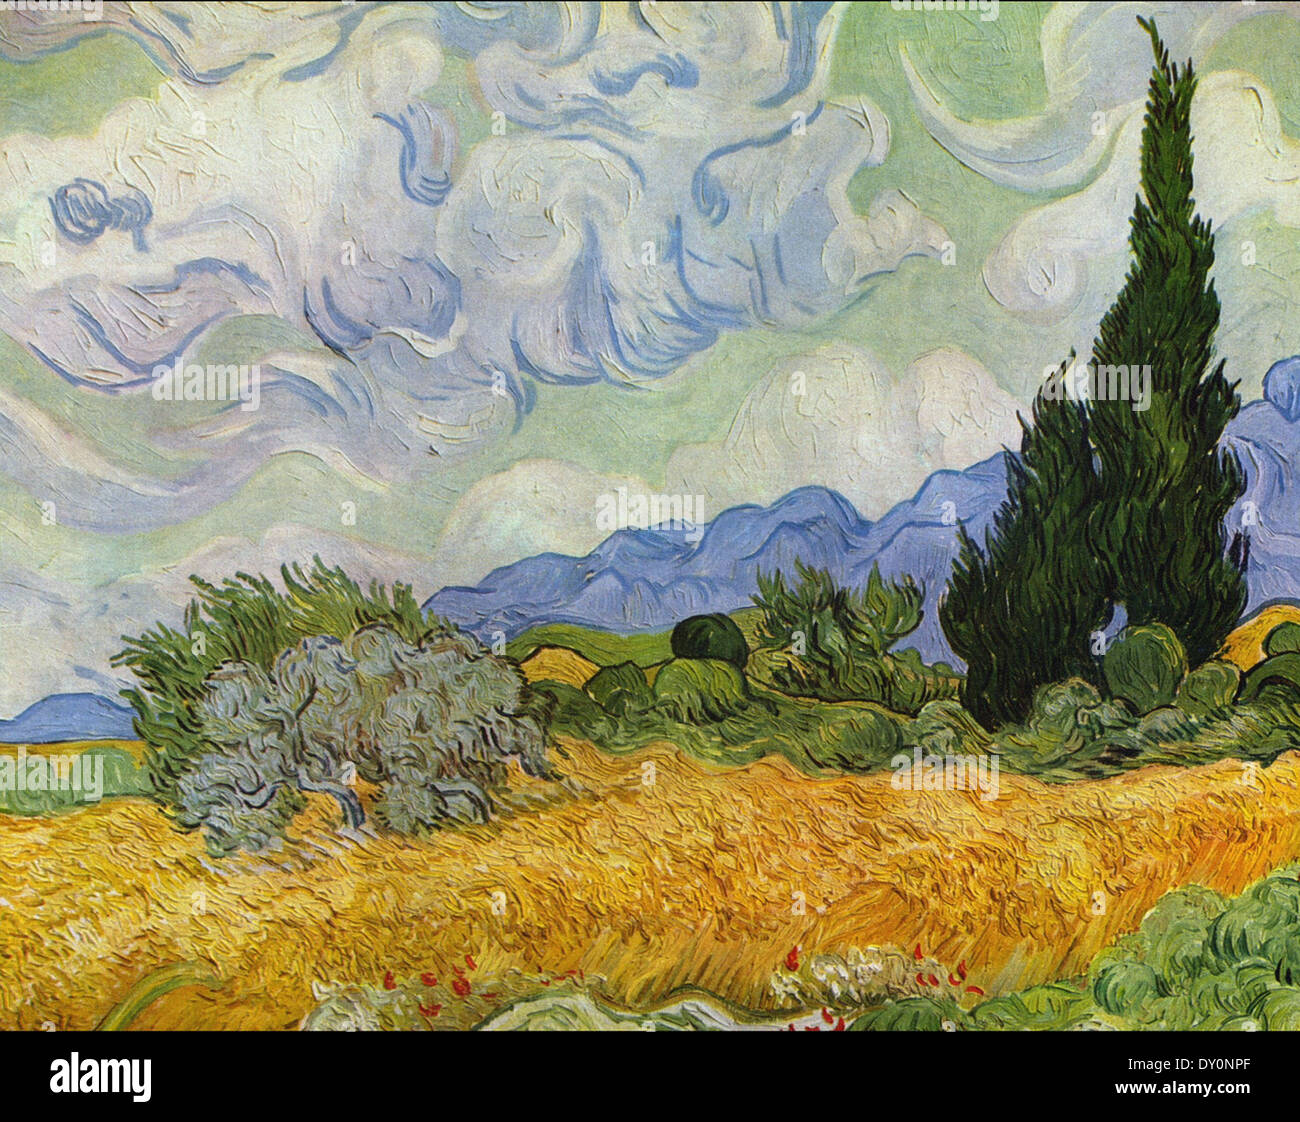 Vincent van Gogh Wheat Field with Cypresses 2 - Stock Image